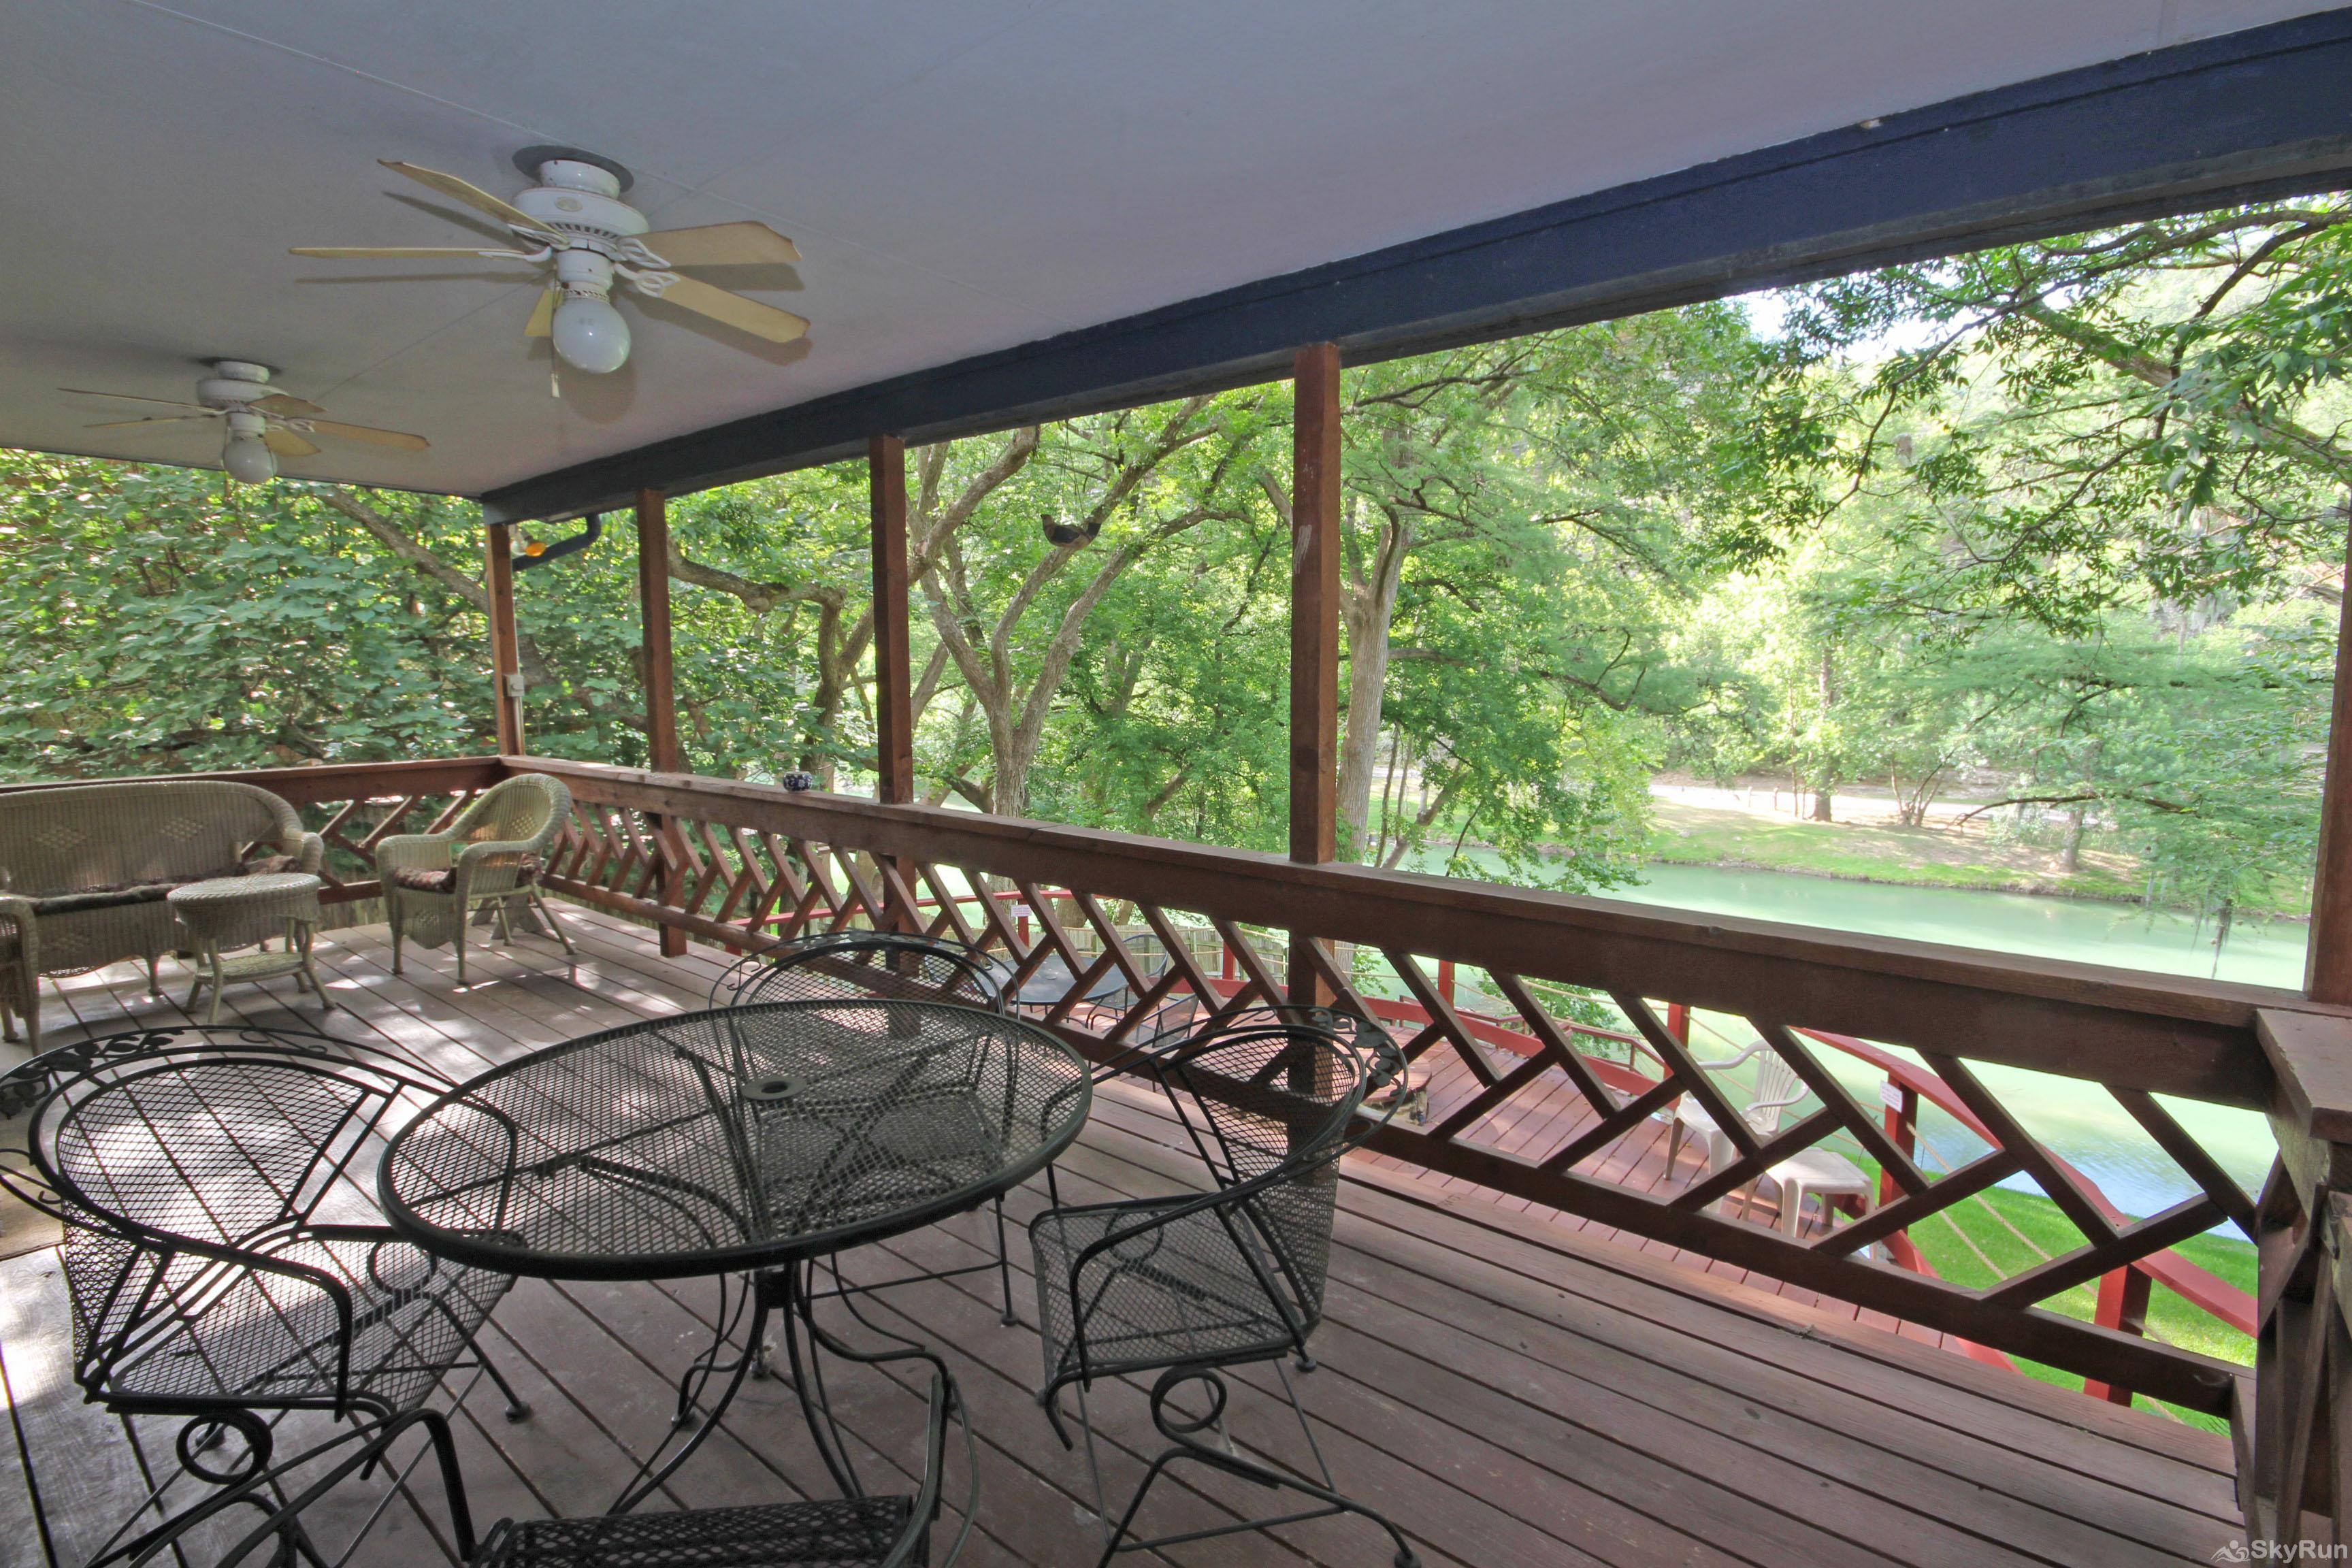 PONDEROSA PARADISE Covered Deck Area